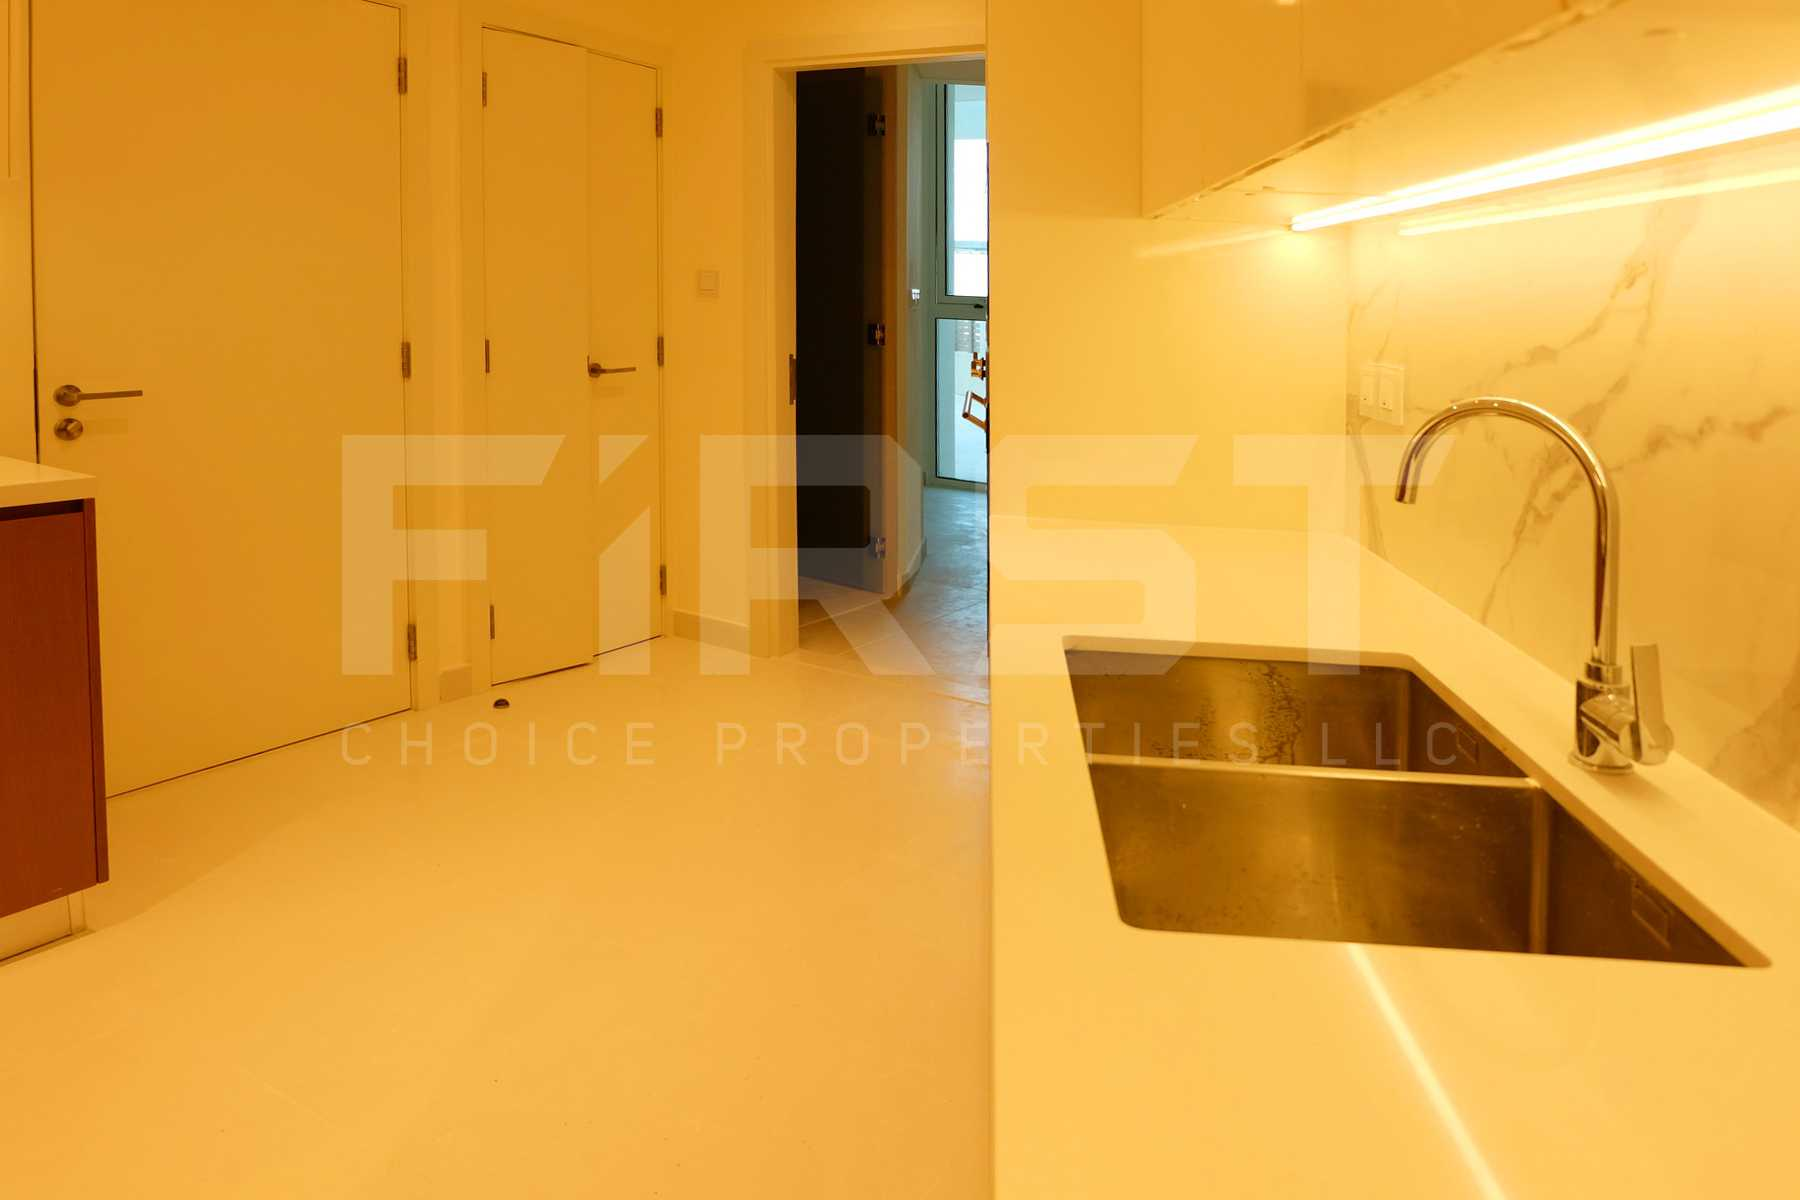 Internal Photo of 2 Bedroom Apartment in Mamsha Al Saadiyat Abu Dhabi UAE (5).jpg